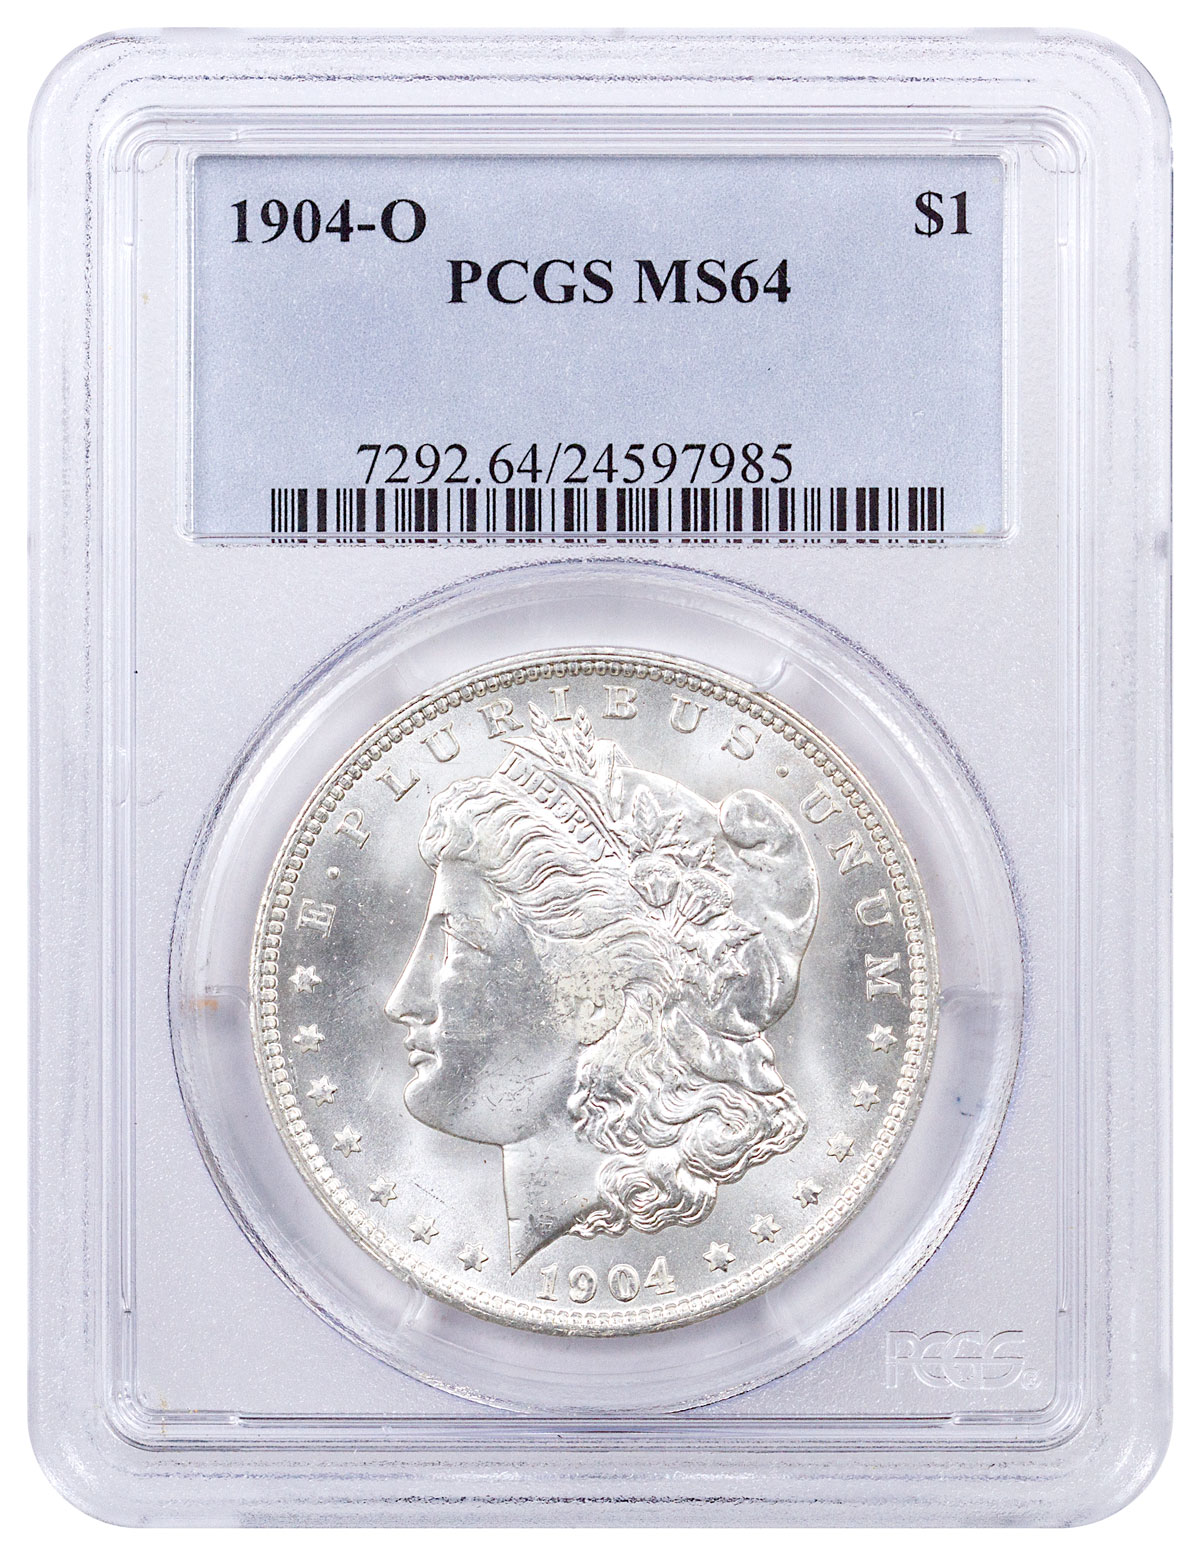 1904-O Morgan Silver Dollar PCGS MS64